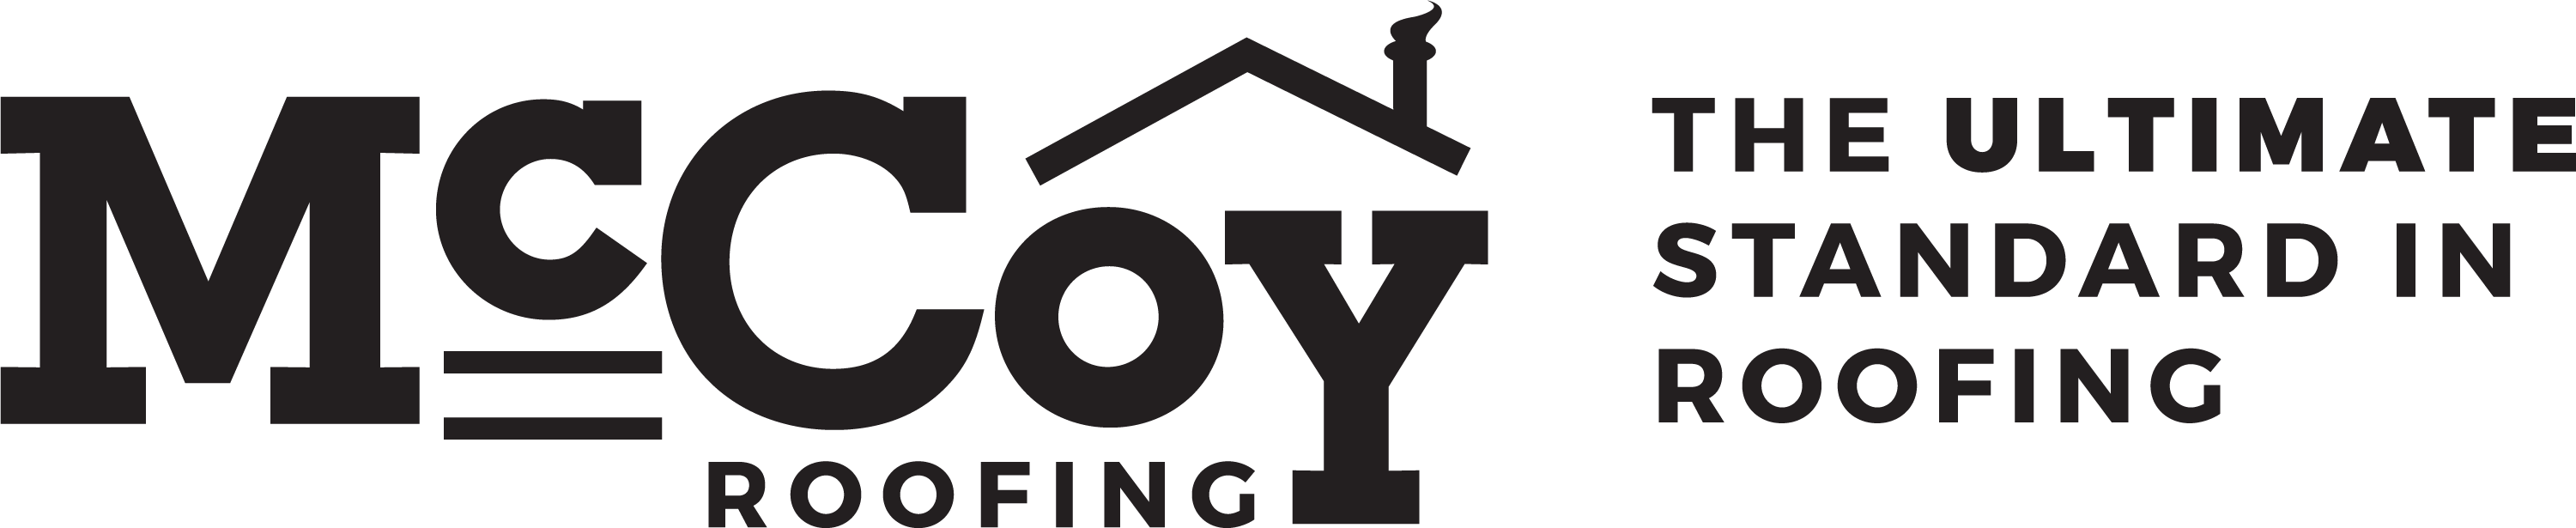 Roofing Company In Omaha Ne Mccoy Roofing Siding